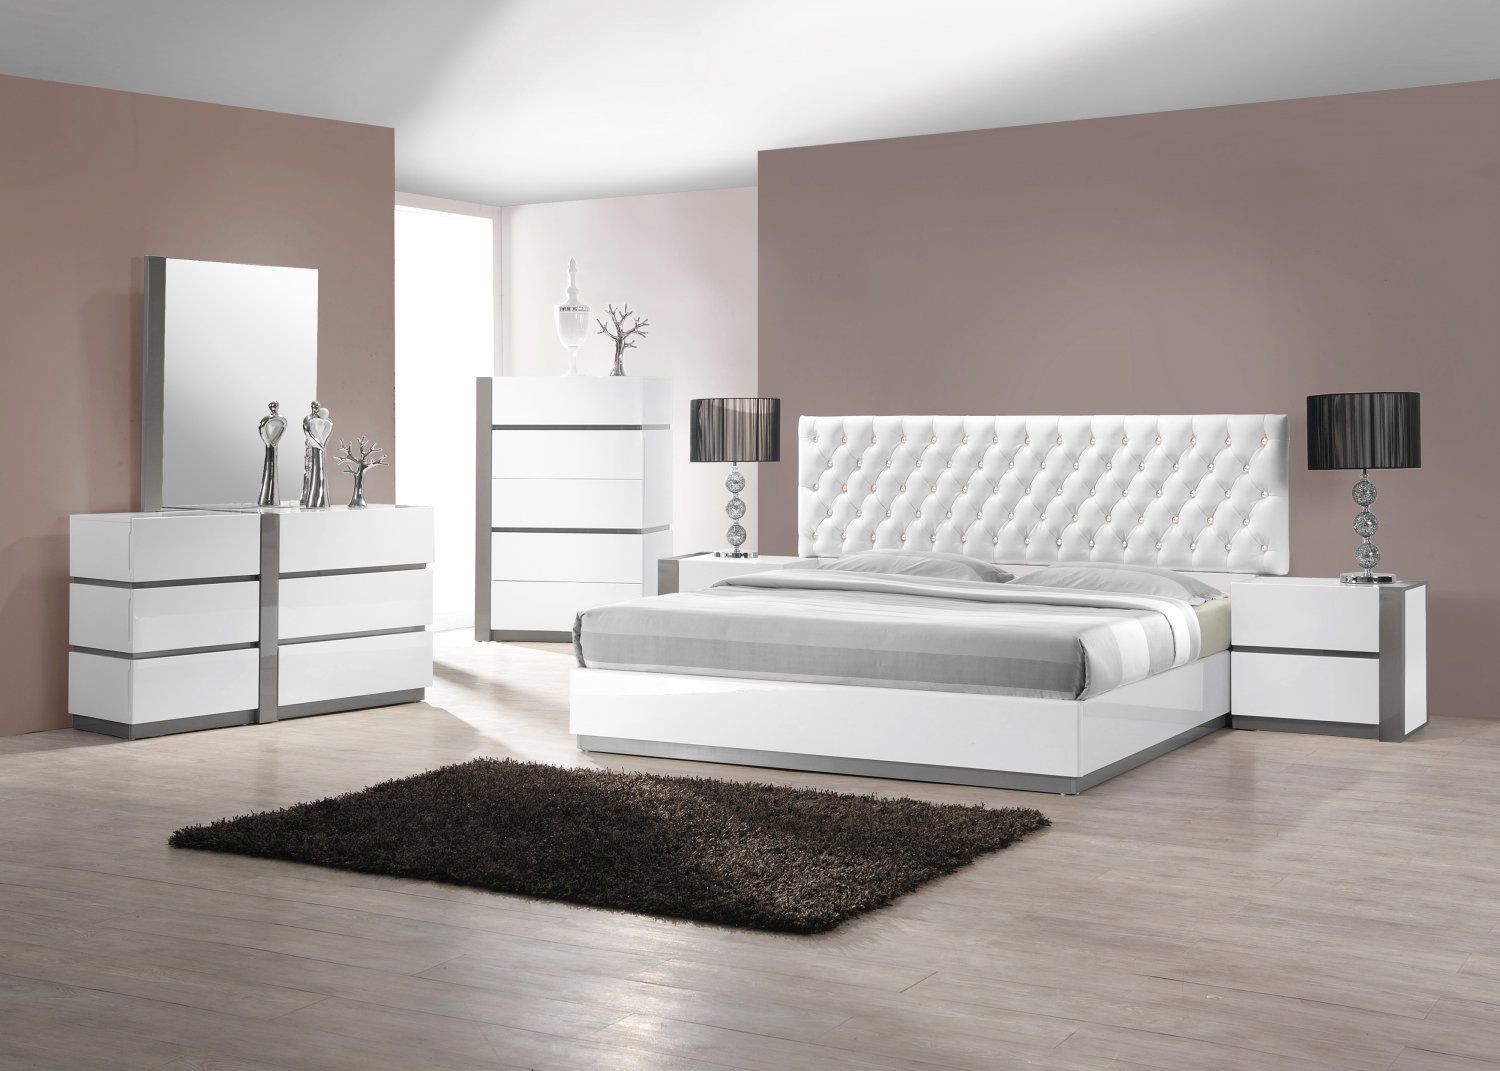 Seville 5 Pcs Cal King Bedroom Set Collection W Leather Like Headboard Modern White Bedroom Bedroom Sets Queen Bedroom Furniture Design